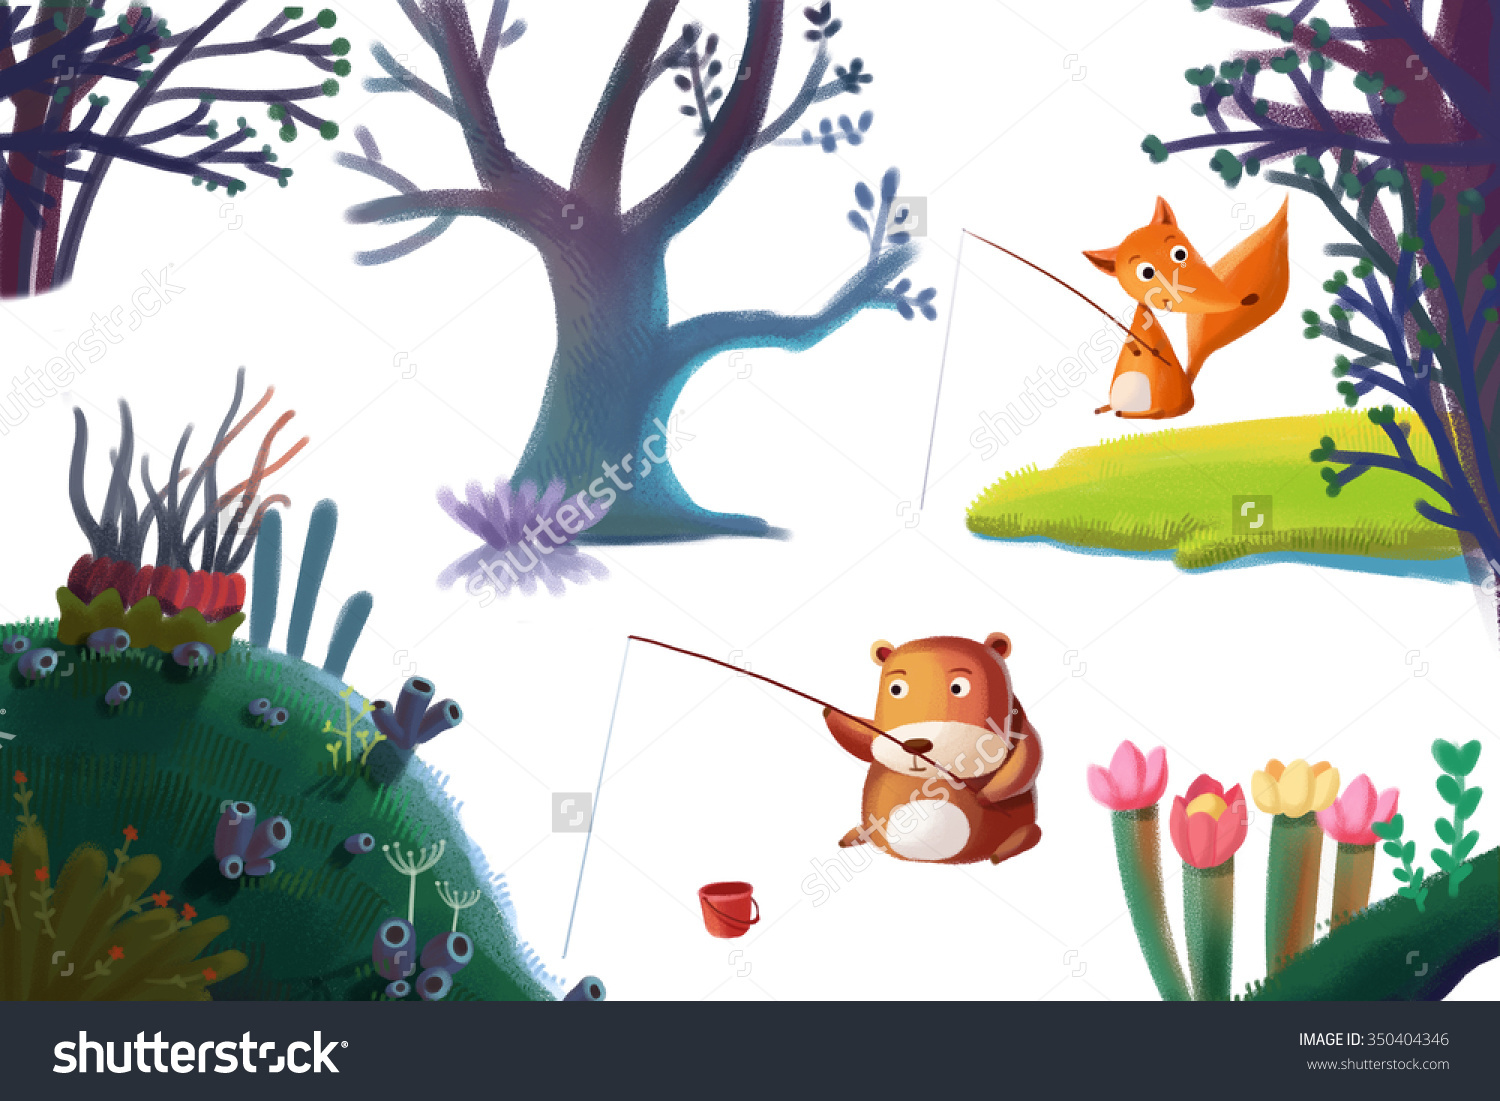 Clip Art Set Nature Stuff Forest Stock Illustration 350404346.